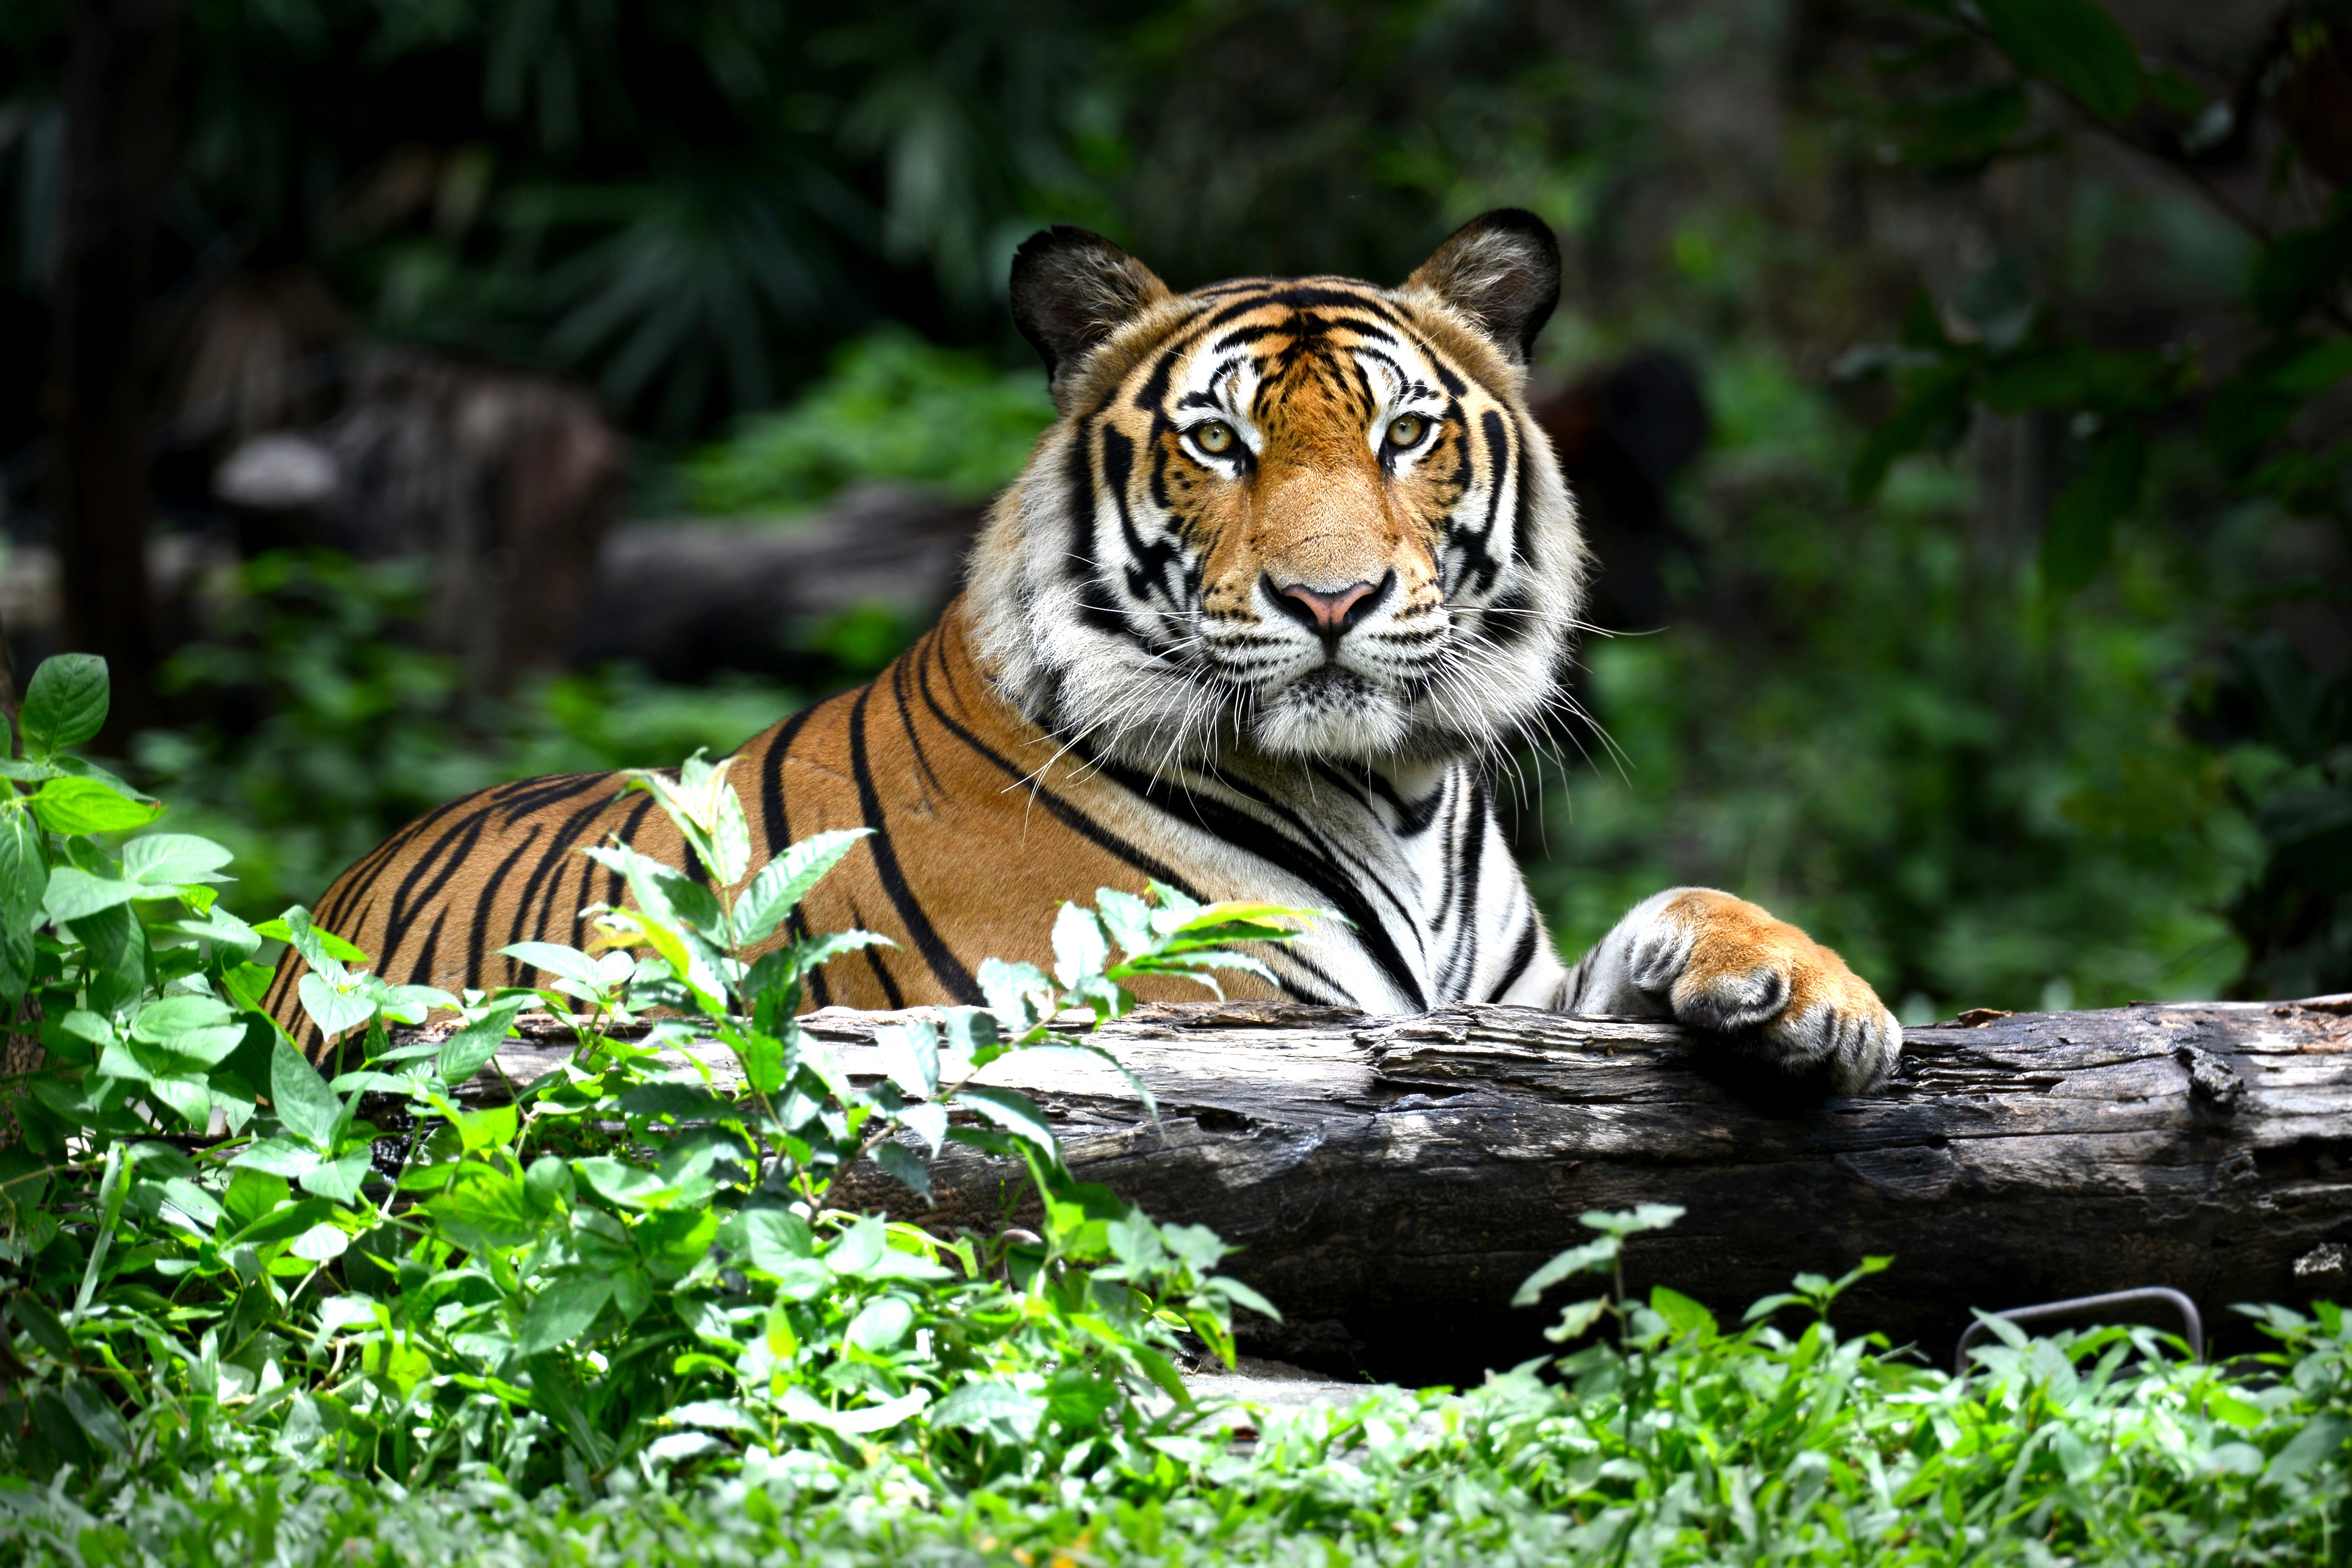 For the First Time In A Century, Wild Tiger Populations Are Beginning to Rebound